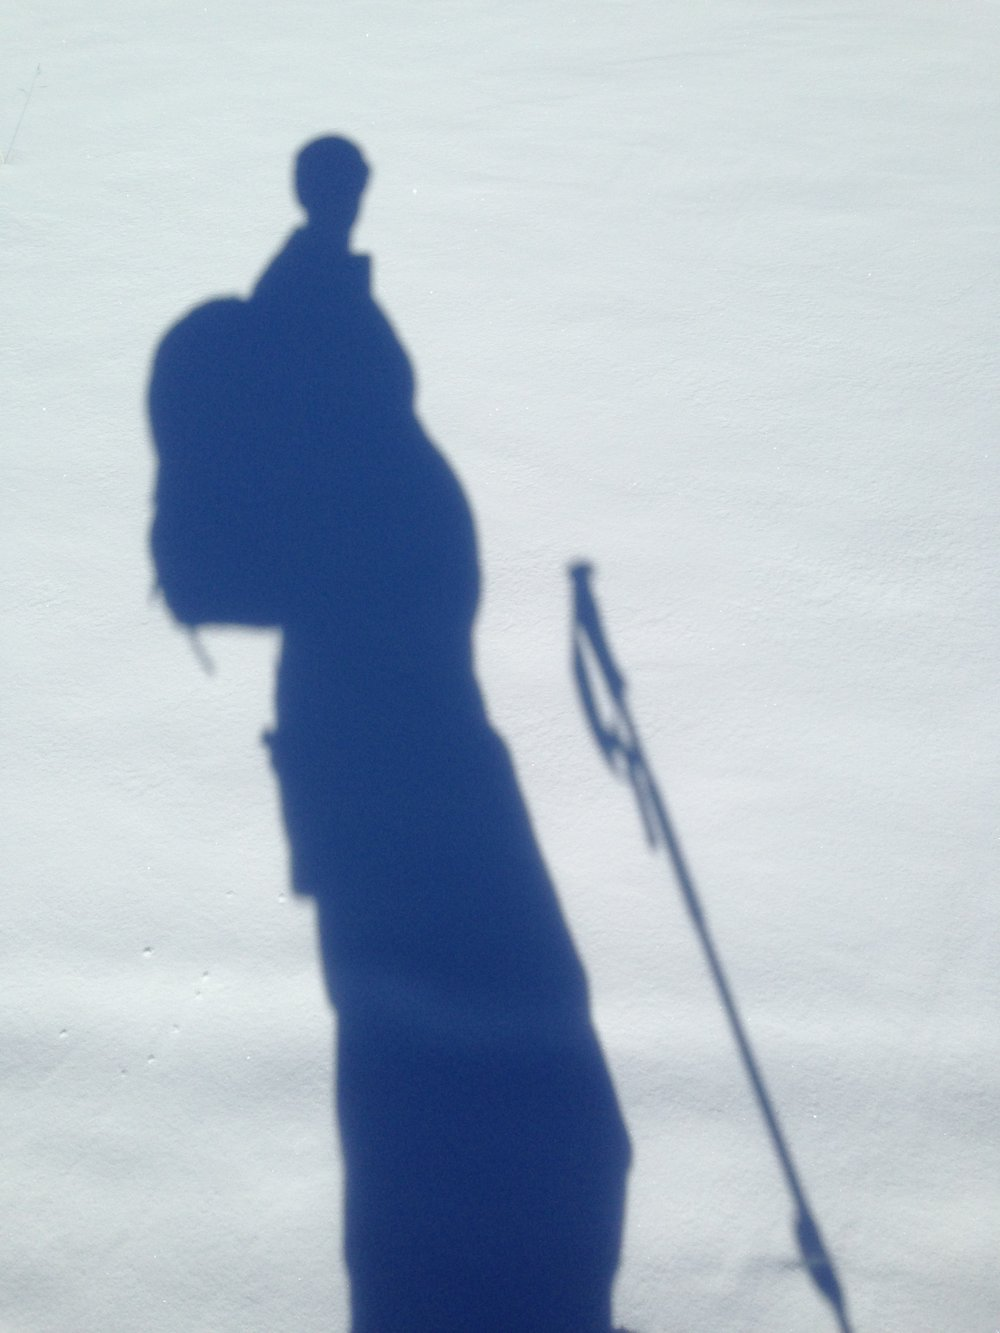 the author's shadow while skiing in Crested Butte 6 months pregnant